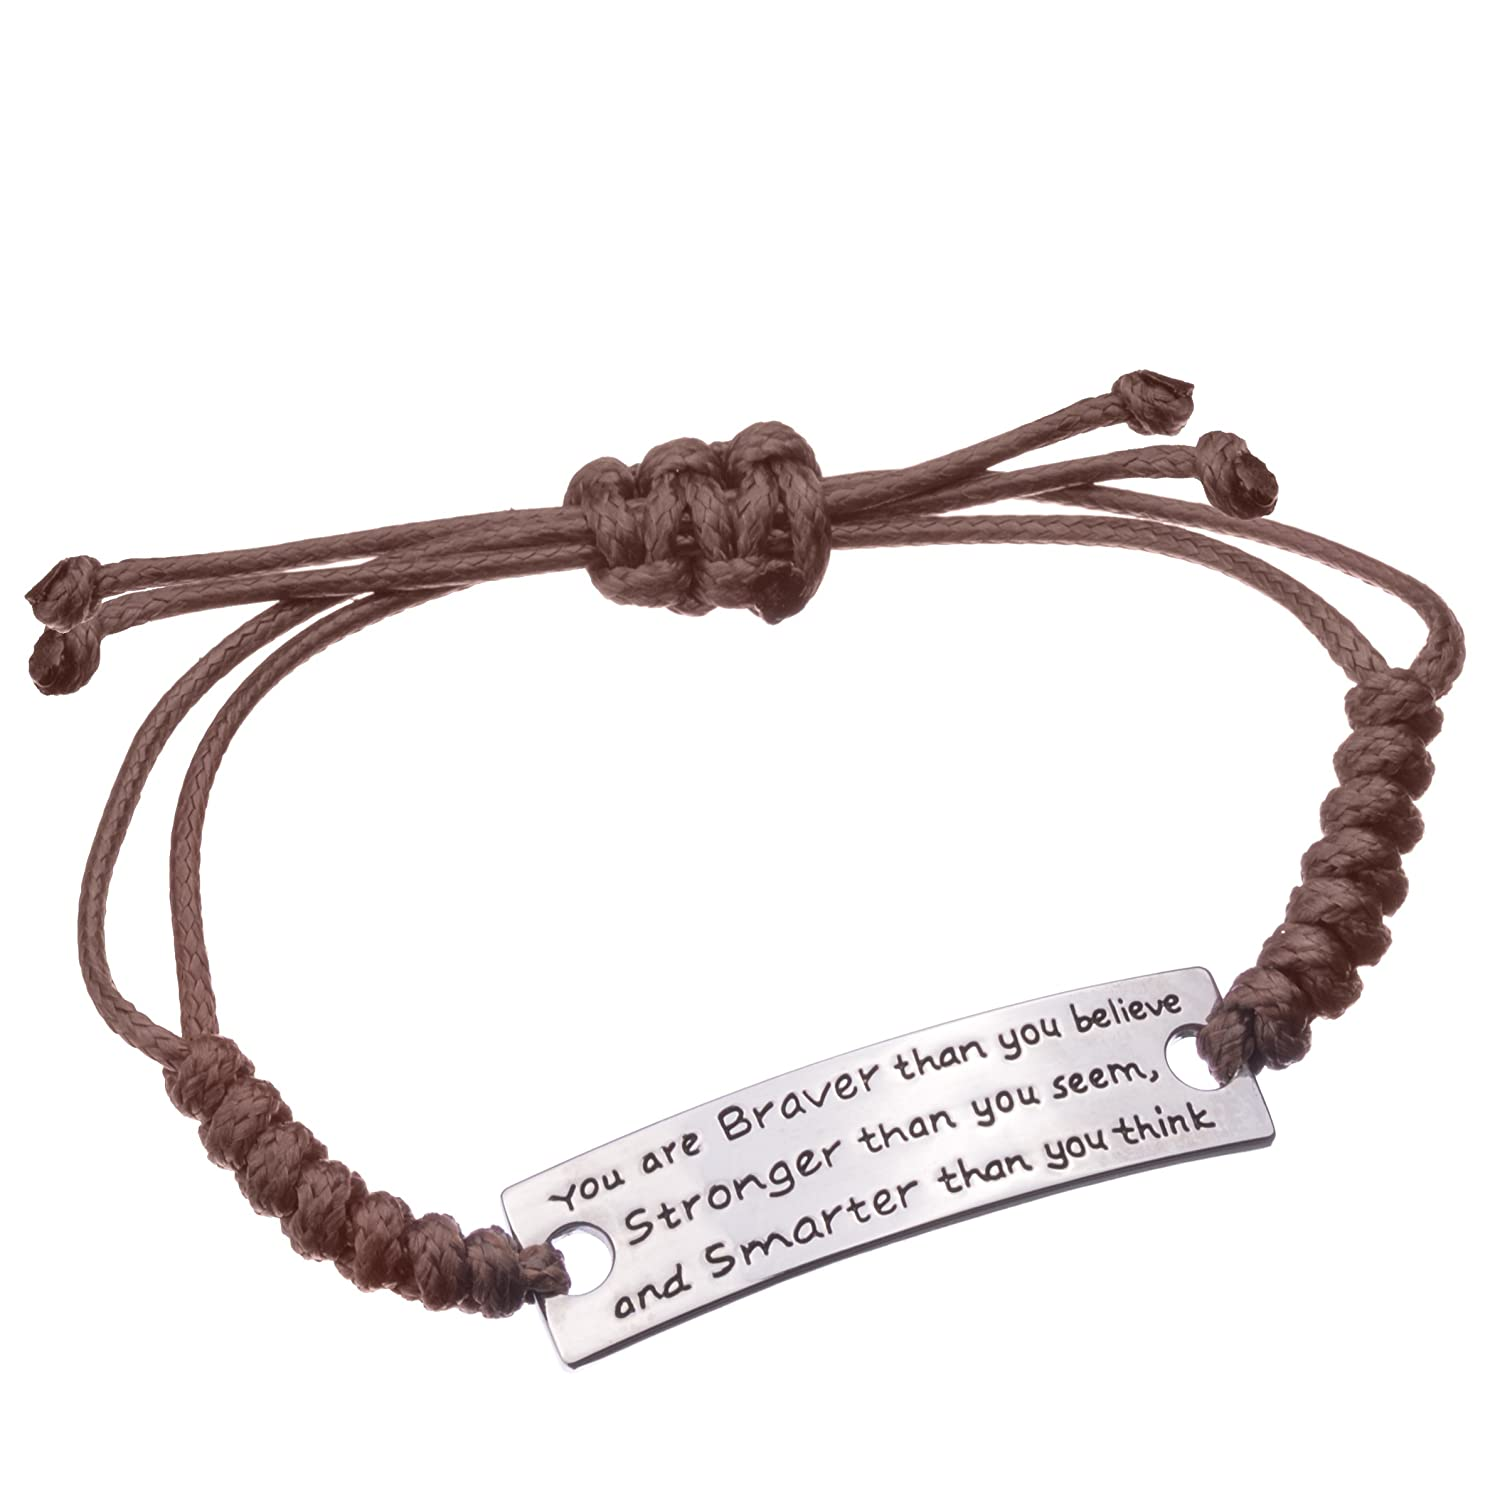 You are Braver than you believe Charming Little Inspirational Leather Bracelet Brown Angelus UK_B01FD8IIH0